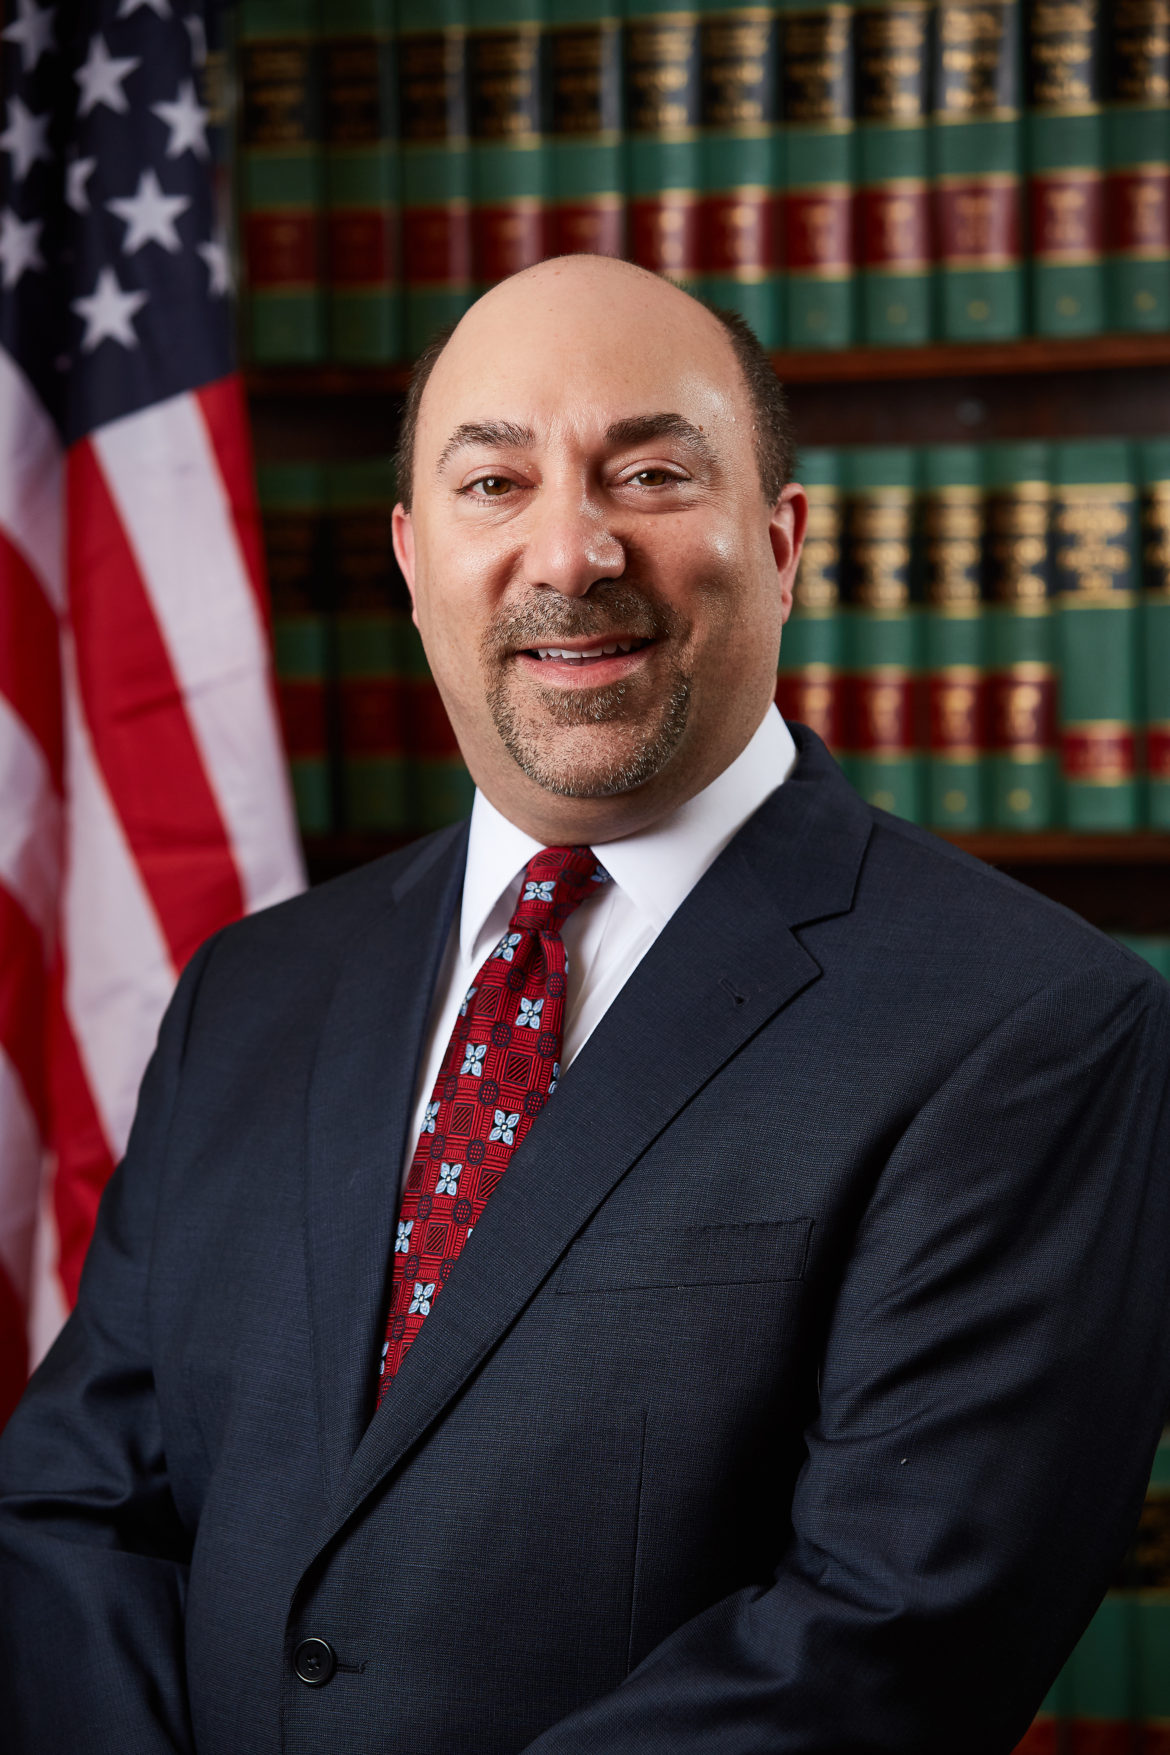 District Judge Alan Mege